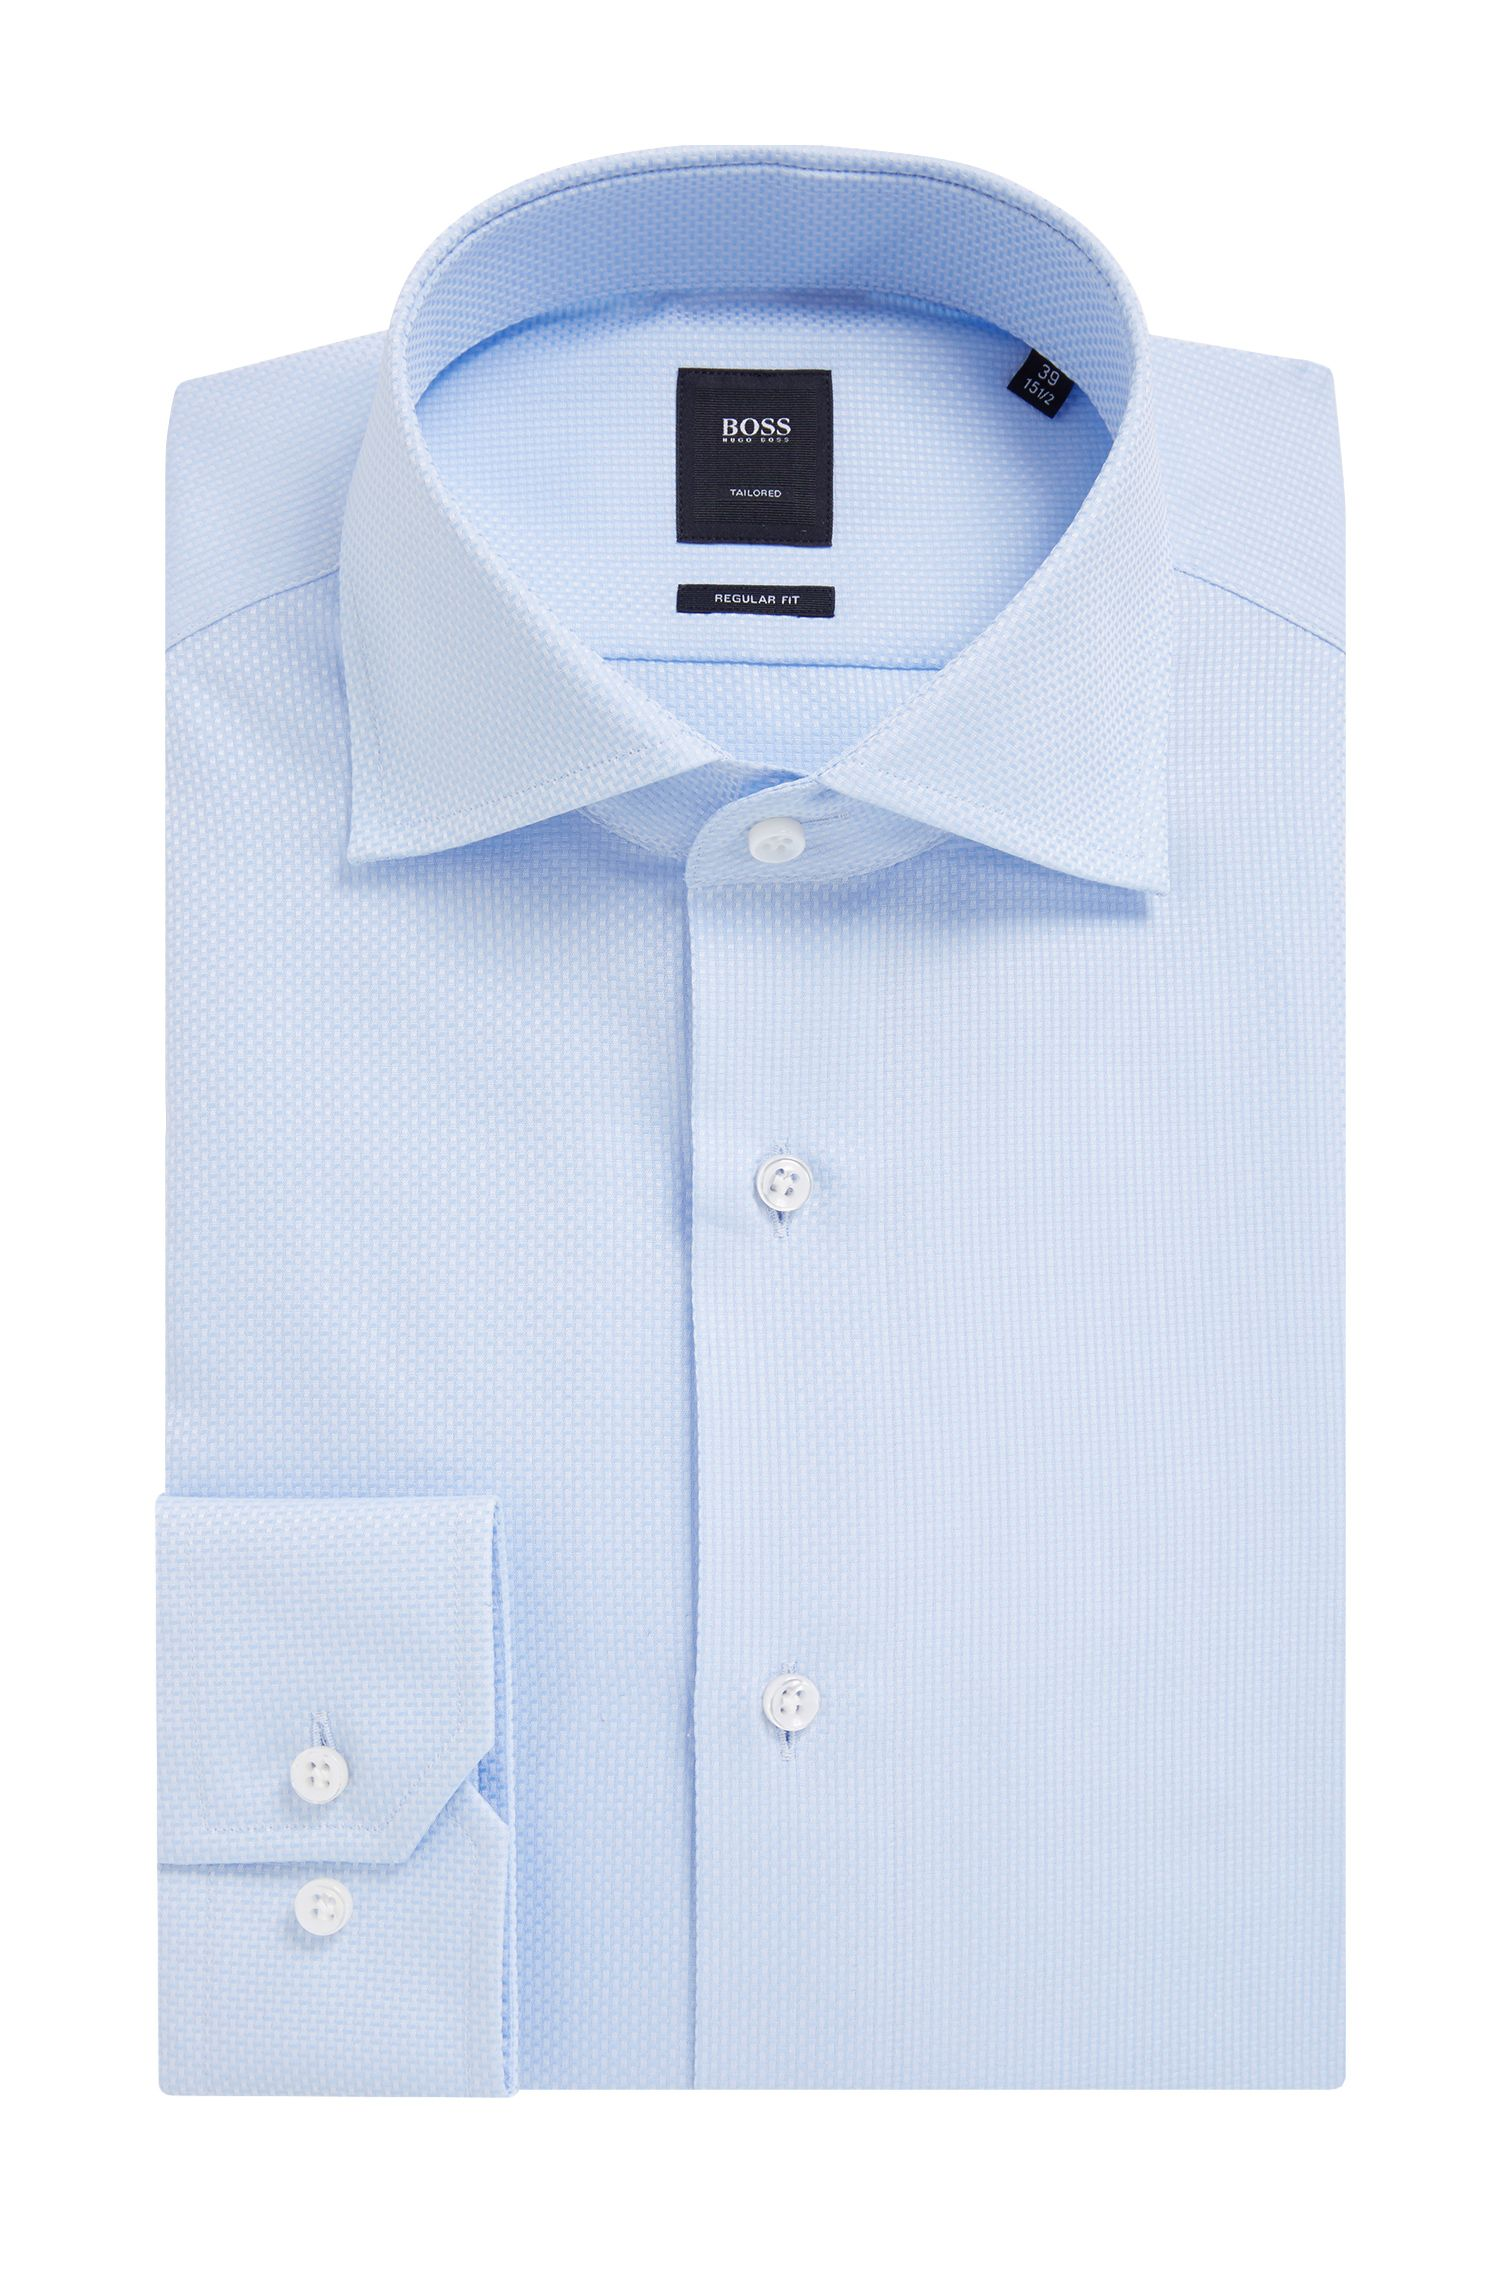 'T-Stenson' | Slim Fit, Italian Cotton Dress Shirt